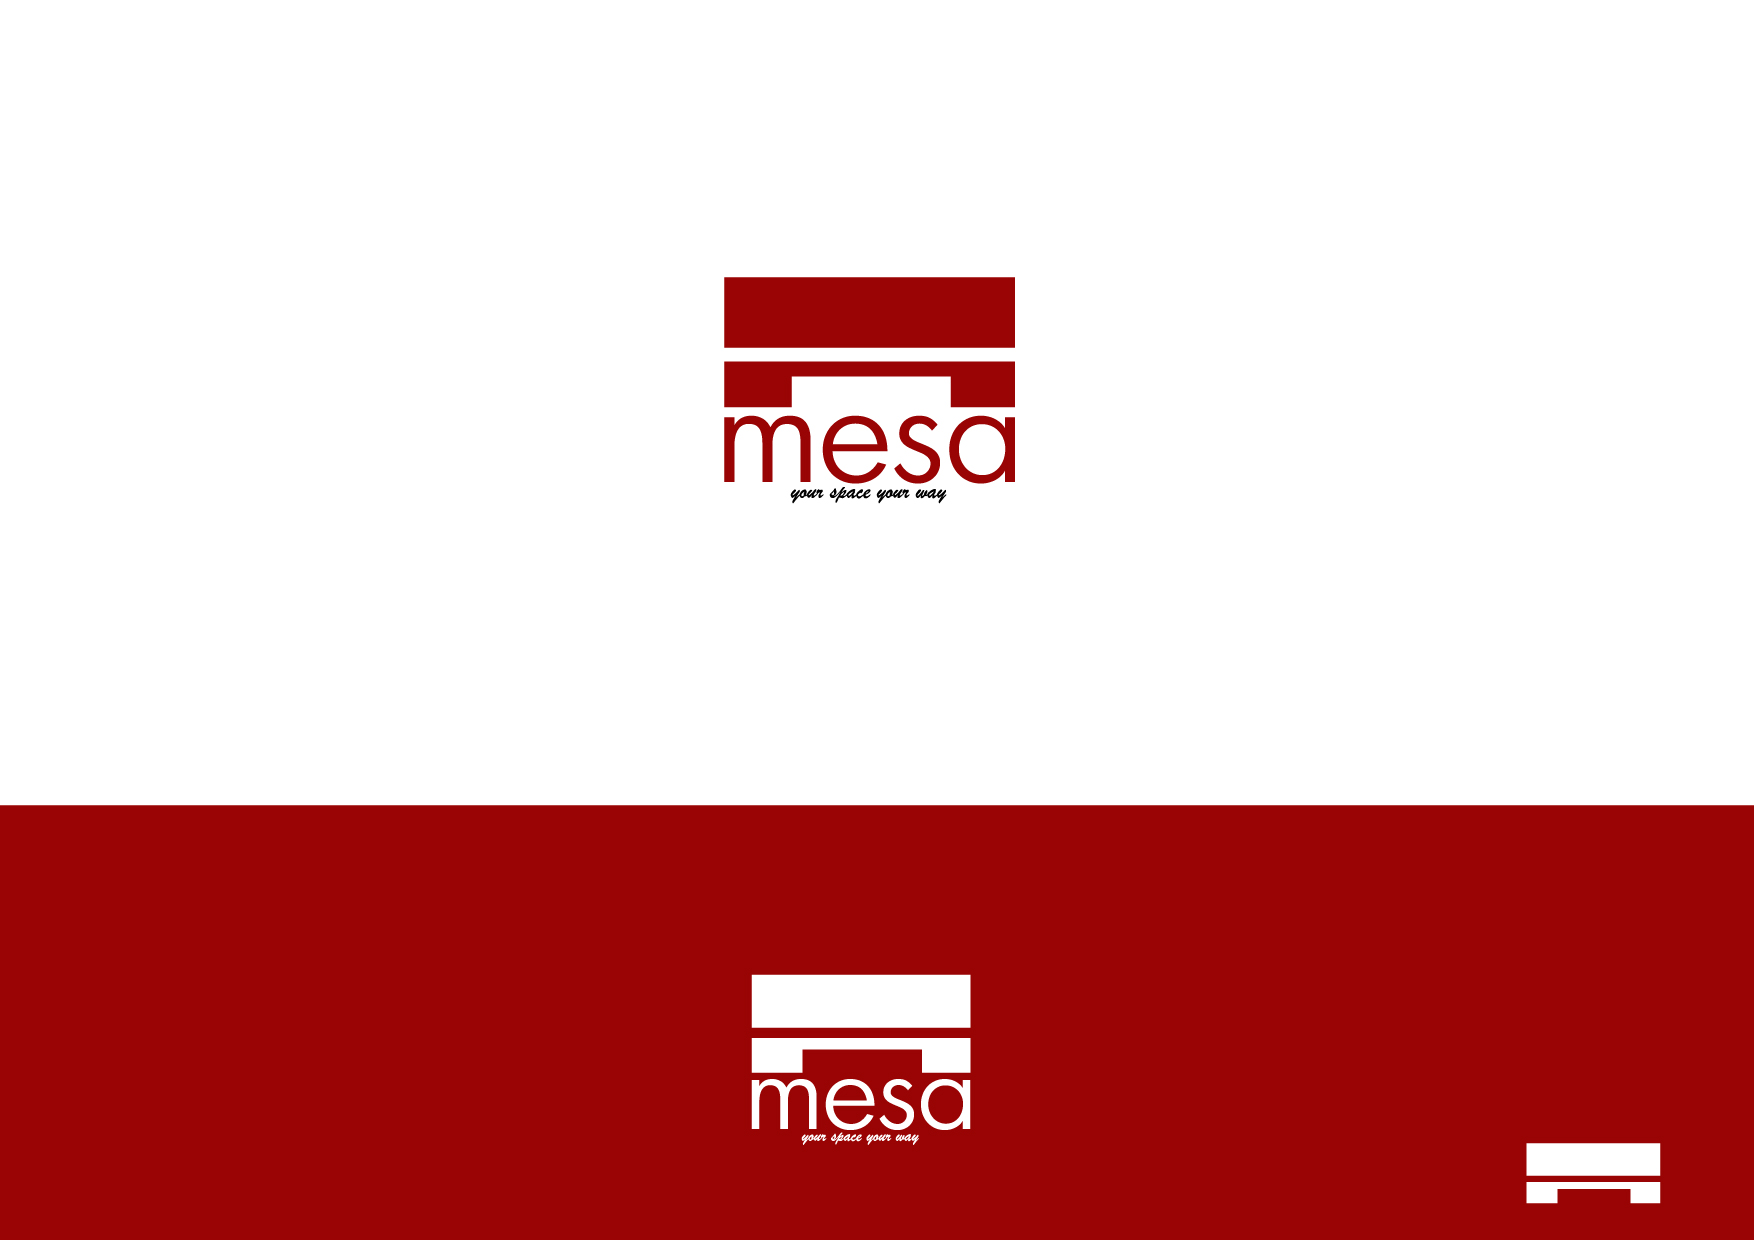 Logo Design by Osi Indra - Entry No. 195 in the Logo Design Contest Logo Design for Mesa.